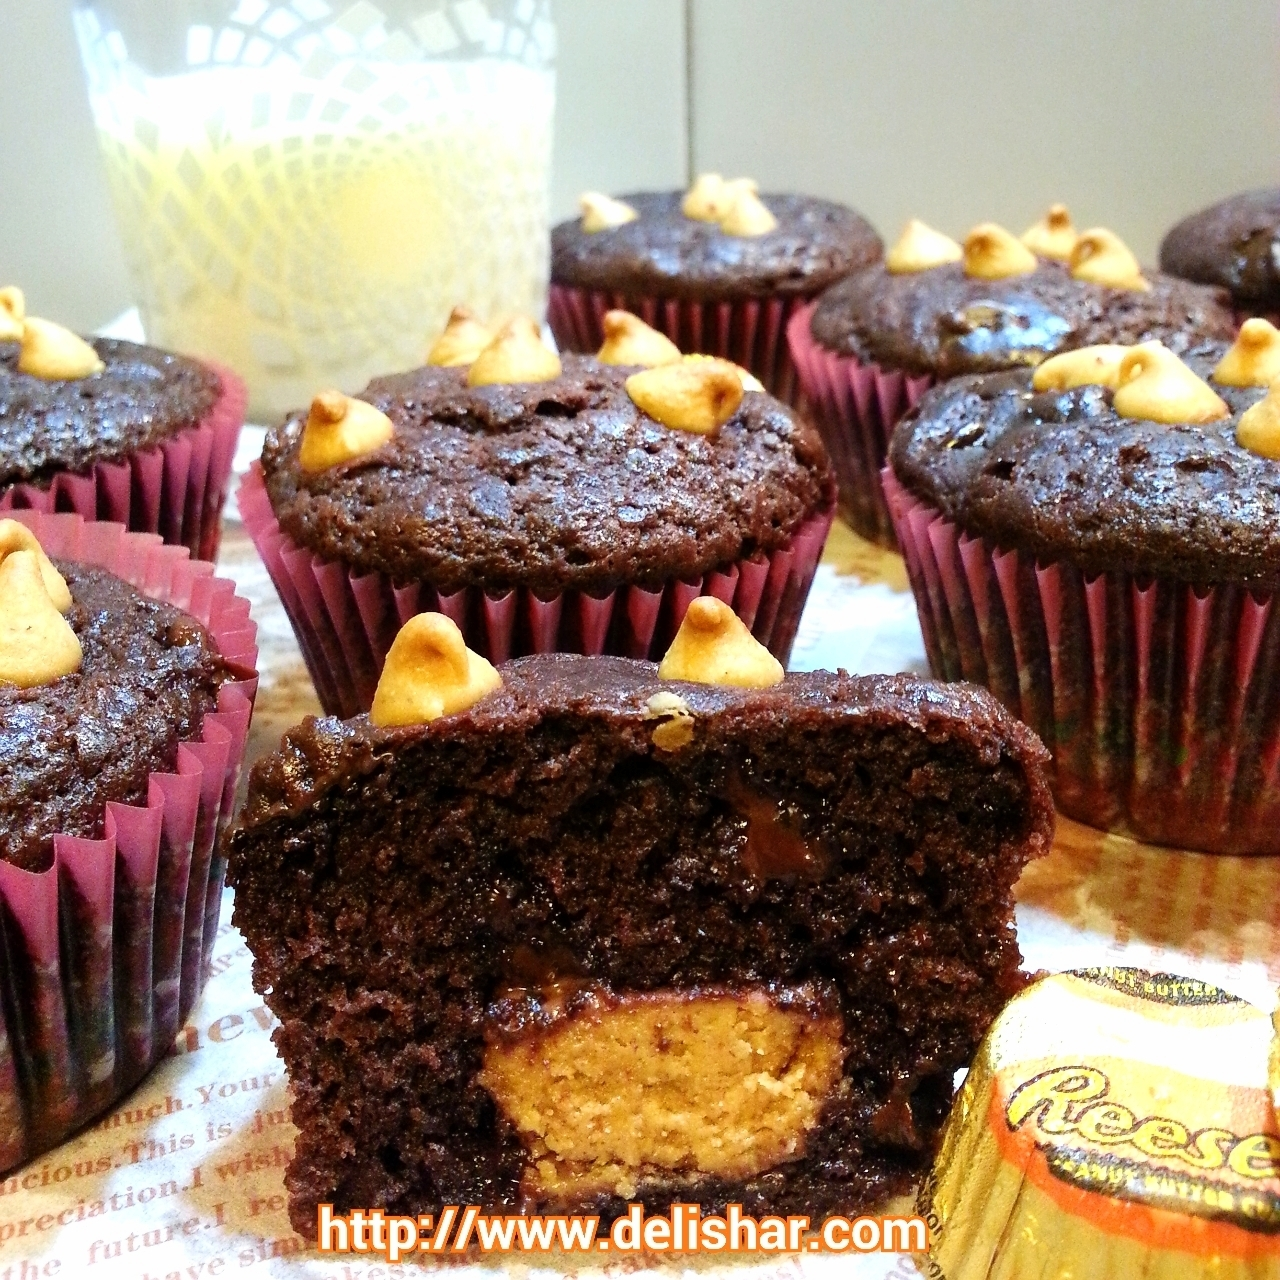 Reese's Peanut Butter Cup Stuffed Chocolate Muffins